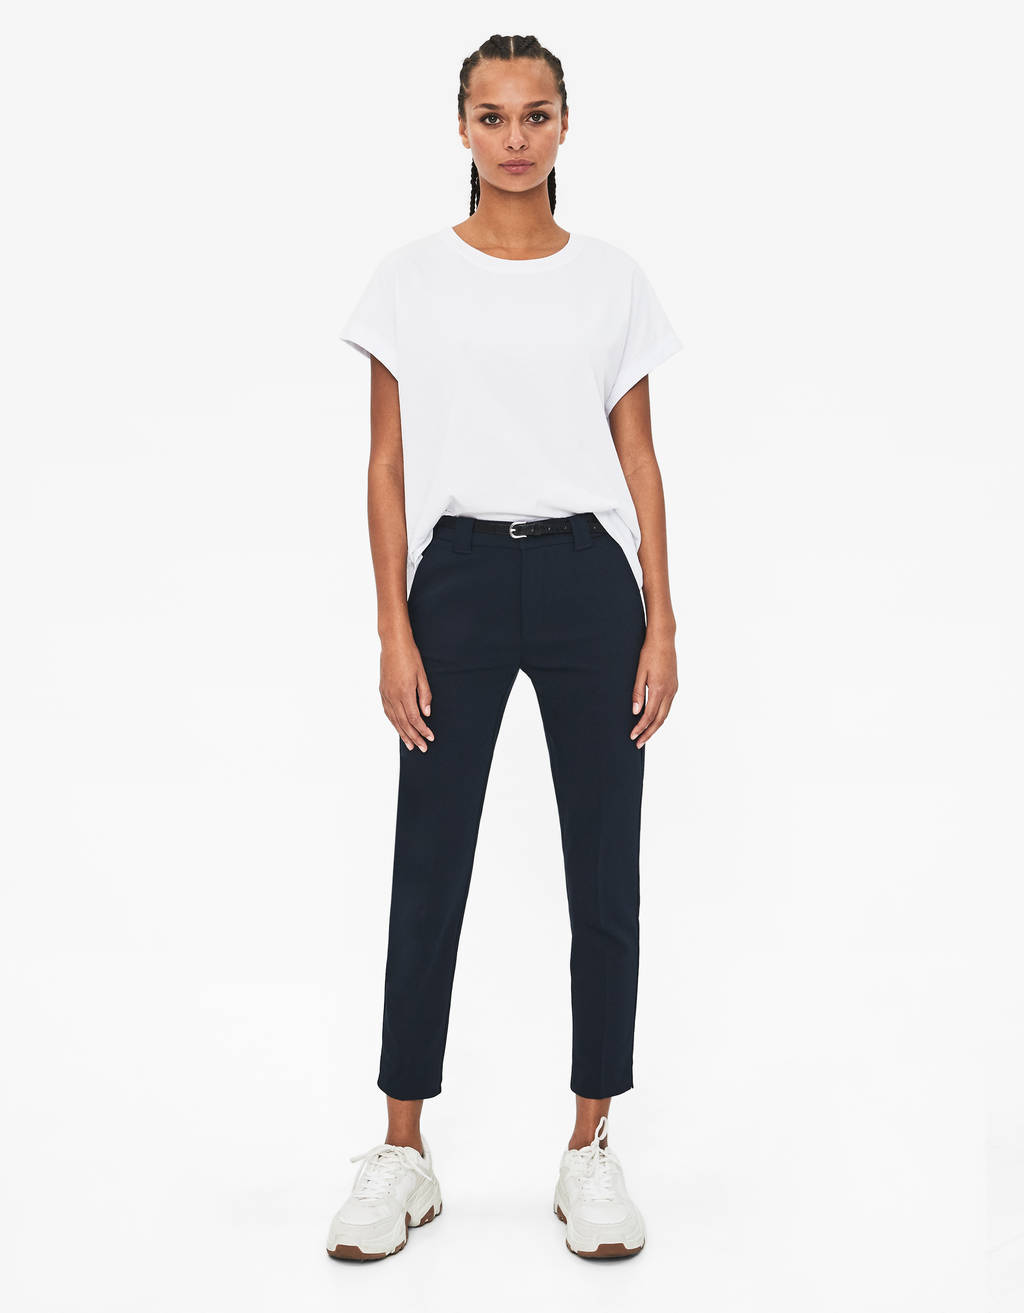 a842bb115b7079 Women's Trousers - Spring Summer 2019 | Bershka